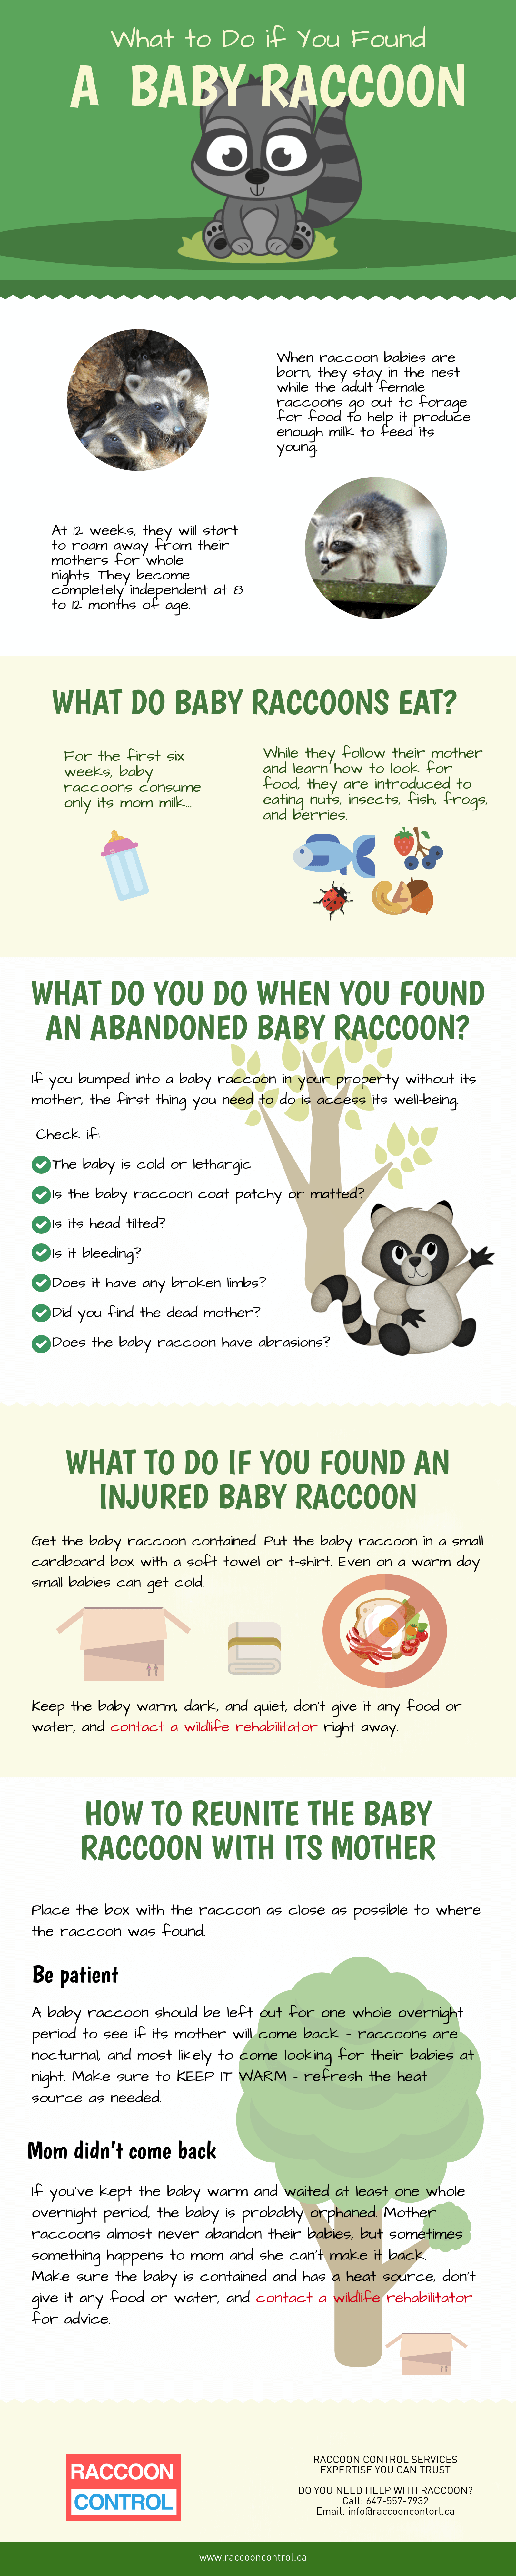 What to do if you spot a baby raccoon